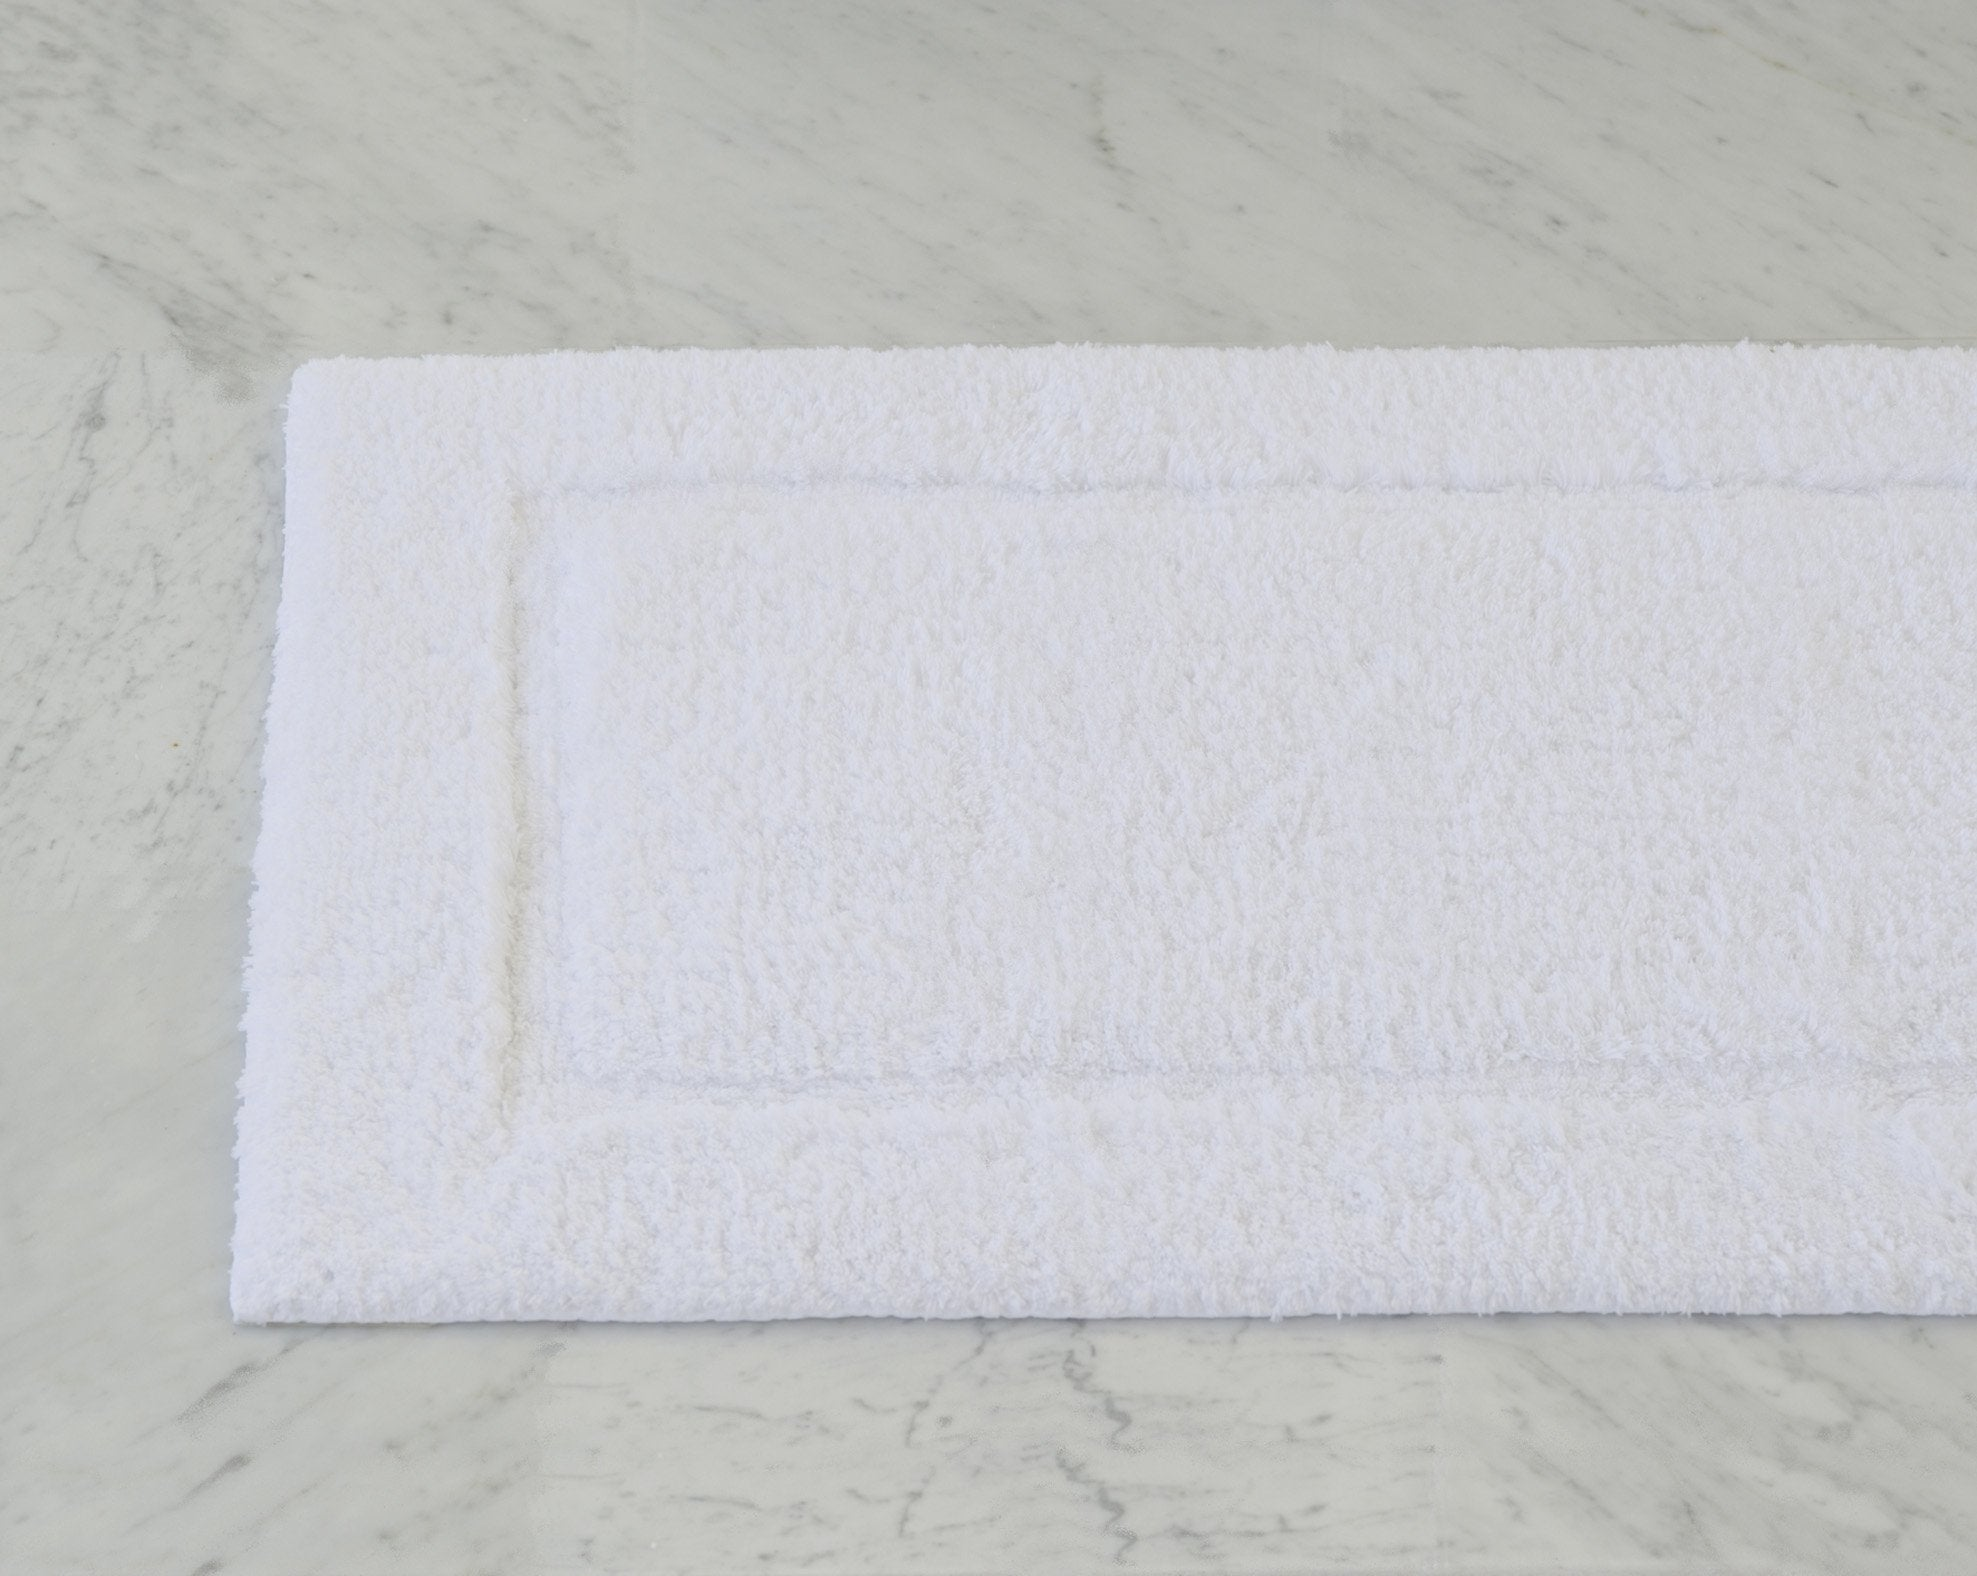 Milagro Bath Rug Large White Product Image 1